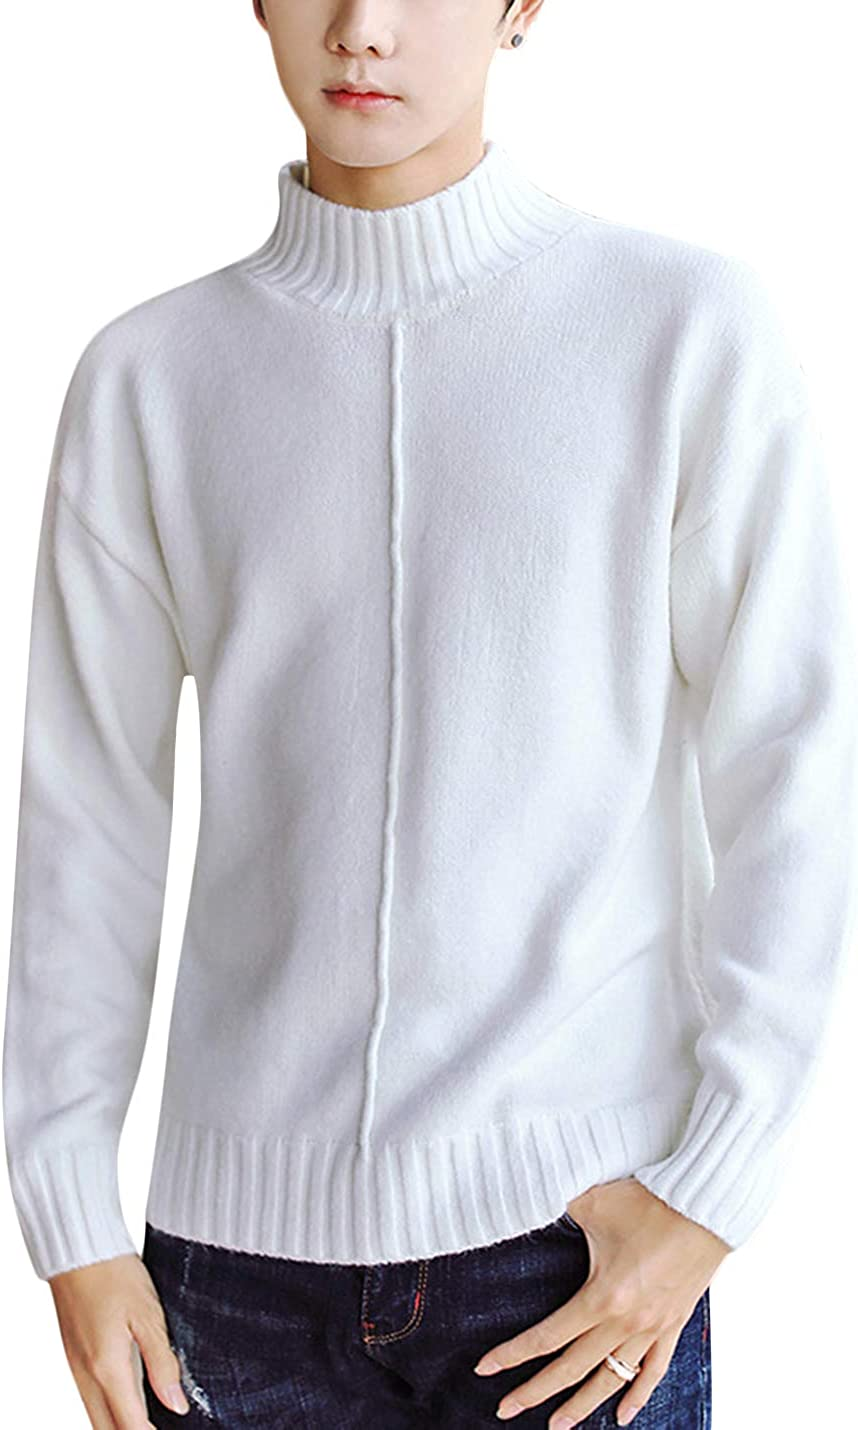 Springrain Men's Casual Turtleneck Knitted Sweatershirt Long Sleeves Pullover